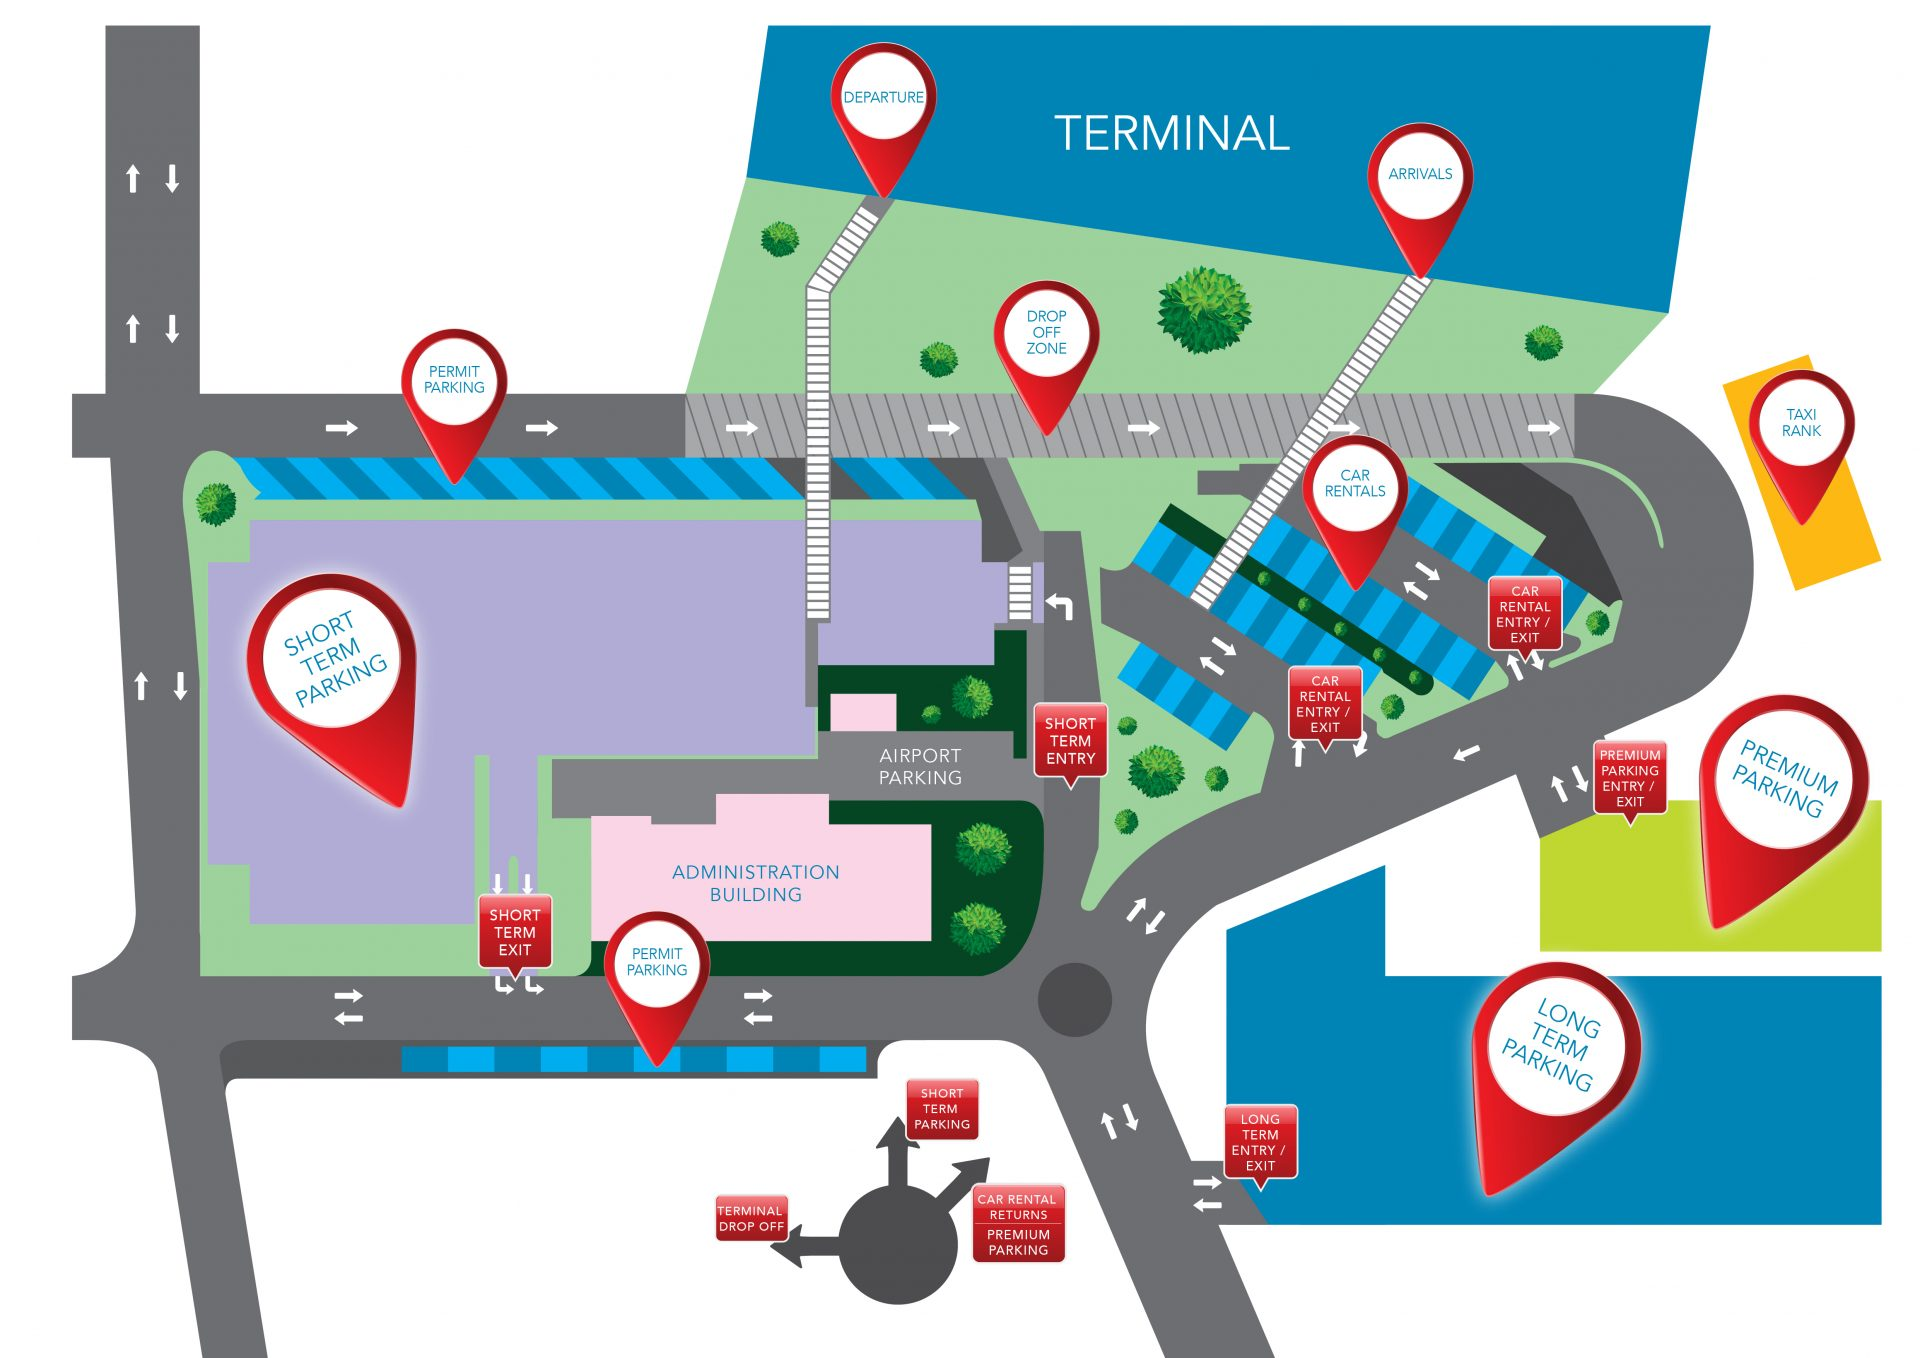 airport-parking-plan-2020-01